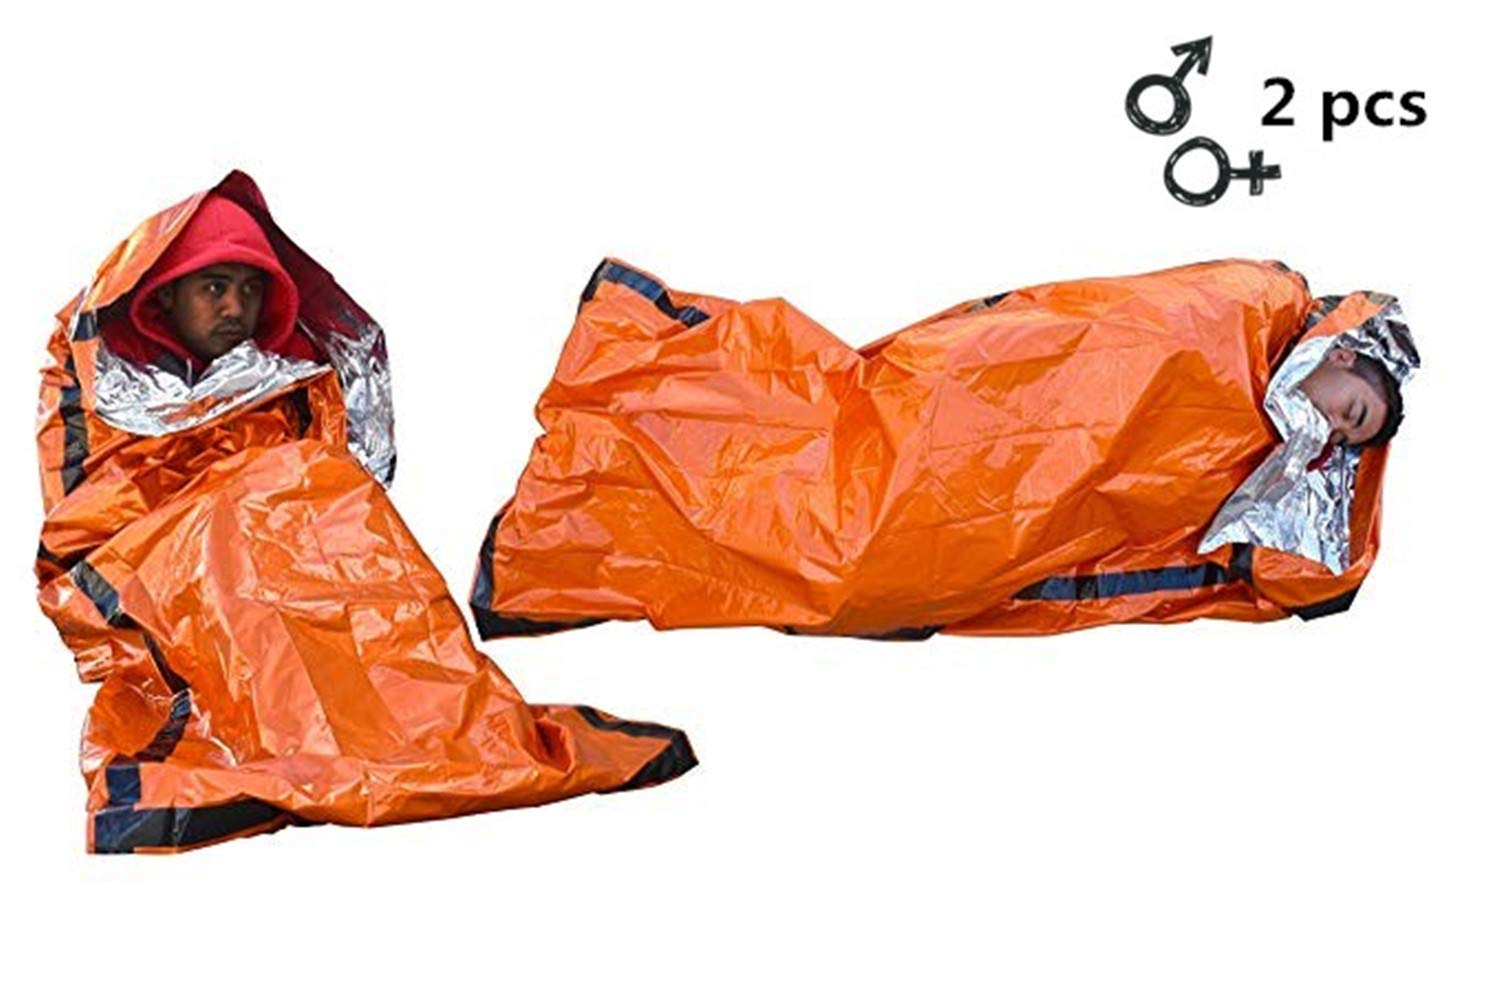 F&W Emergency Sleeping Bag-Use as Emergency Bivy Sack Light-Weight Polyethylene Survival Sleeping Bag for Camping Travel Hiking(2 Pack)